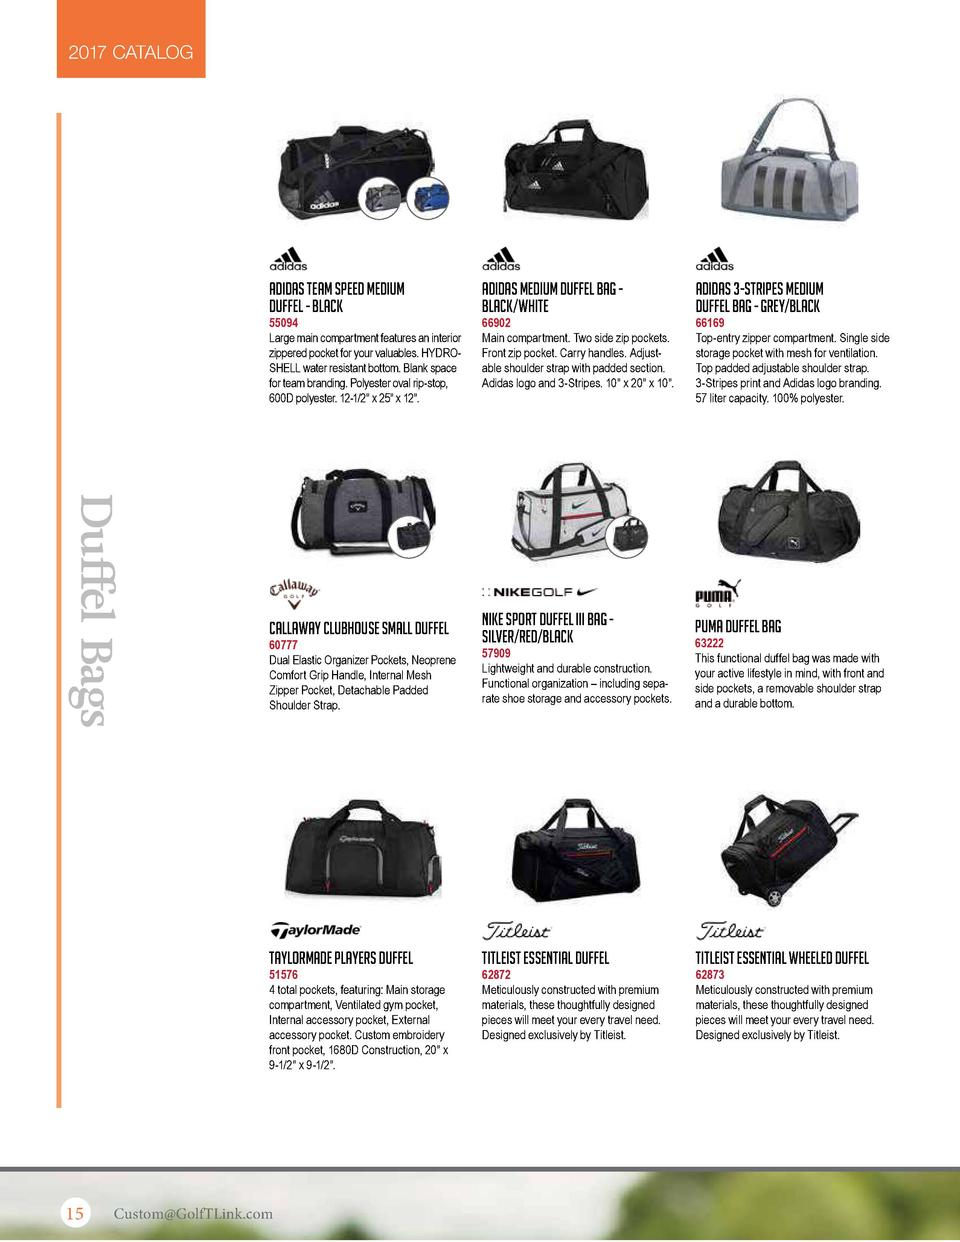 2017 CATALOG  Adidas Team Speed Medium Duffel - Black  Adidas Medium Duffel Bag Black White  Adidas 3-Stripes Medium Duffe...